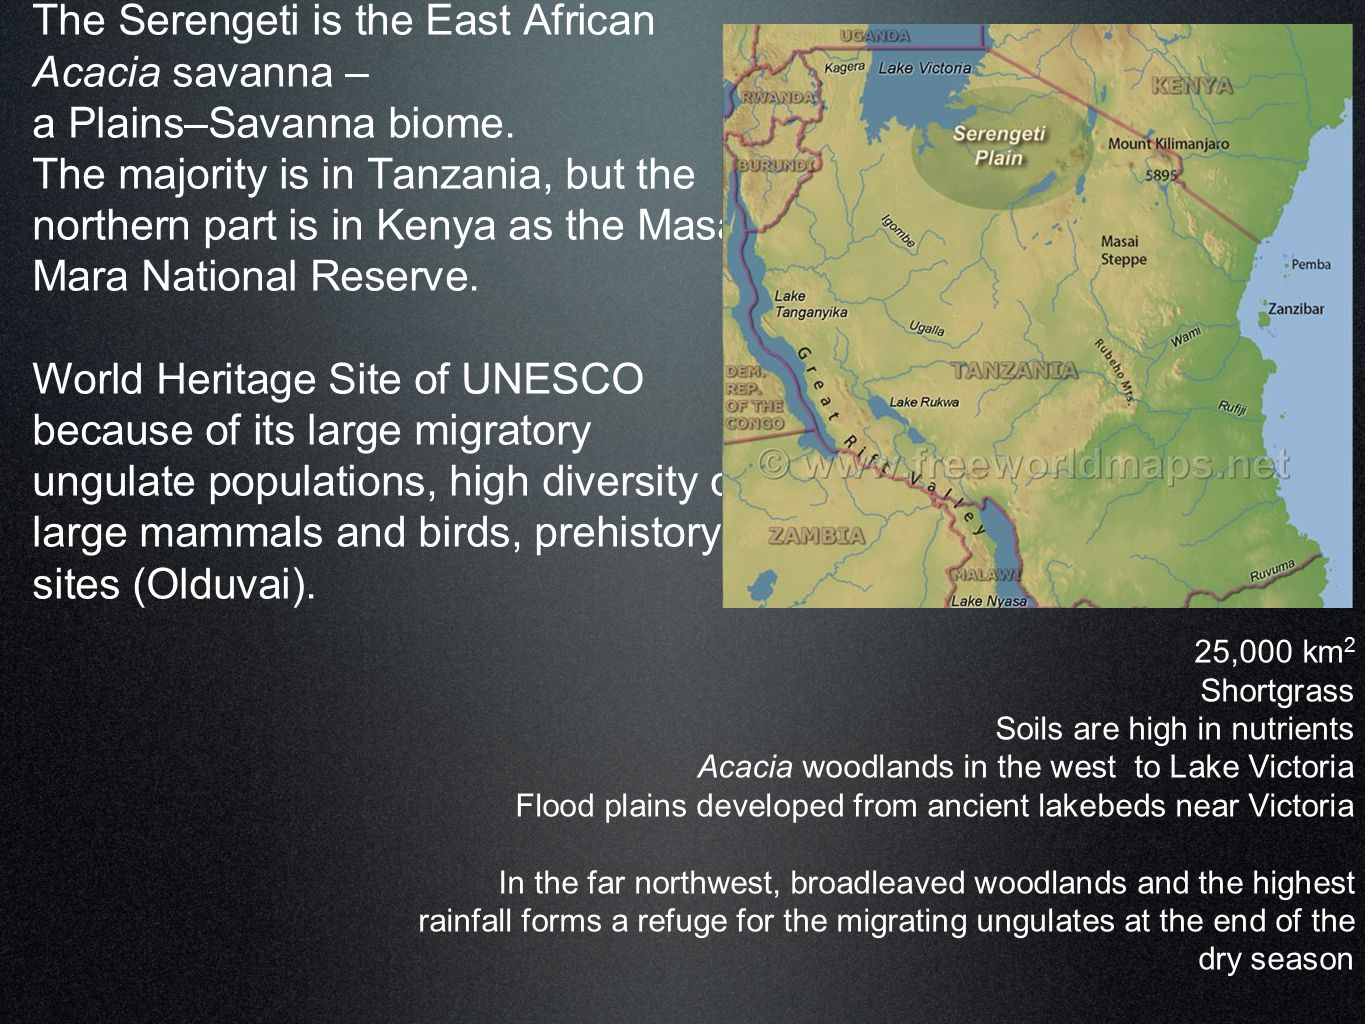 The Serengeti is the East African Acacia savanna – a Plains–Savanna biome. The majority is in Tanzania, but the northern part is in Kenya as the Masai Mara National Reserve. World Heritage Site of UNESCO because of its large migratory ungulate populations, high diversity of large mammals and birds, prehistory sites (Olduvai).